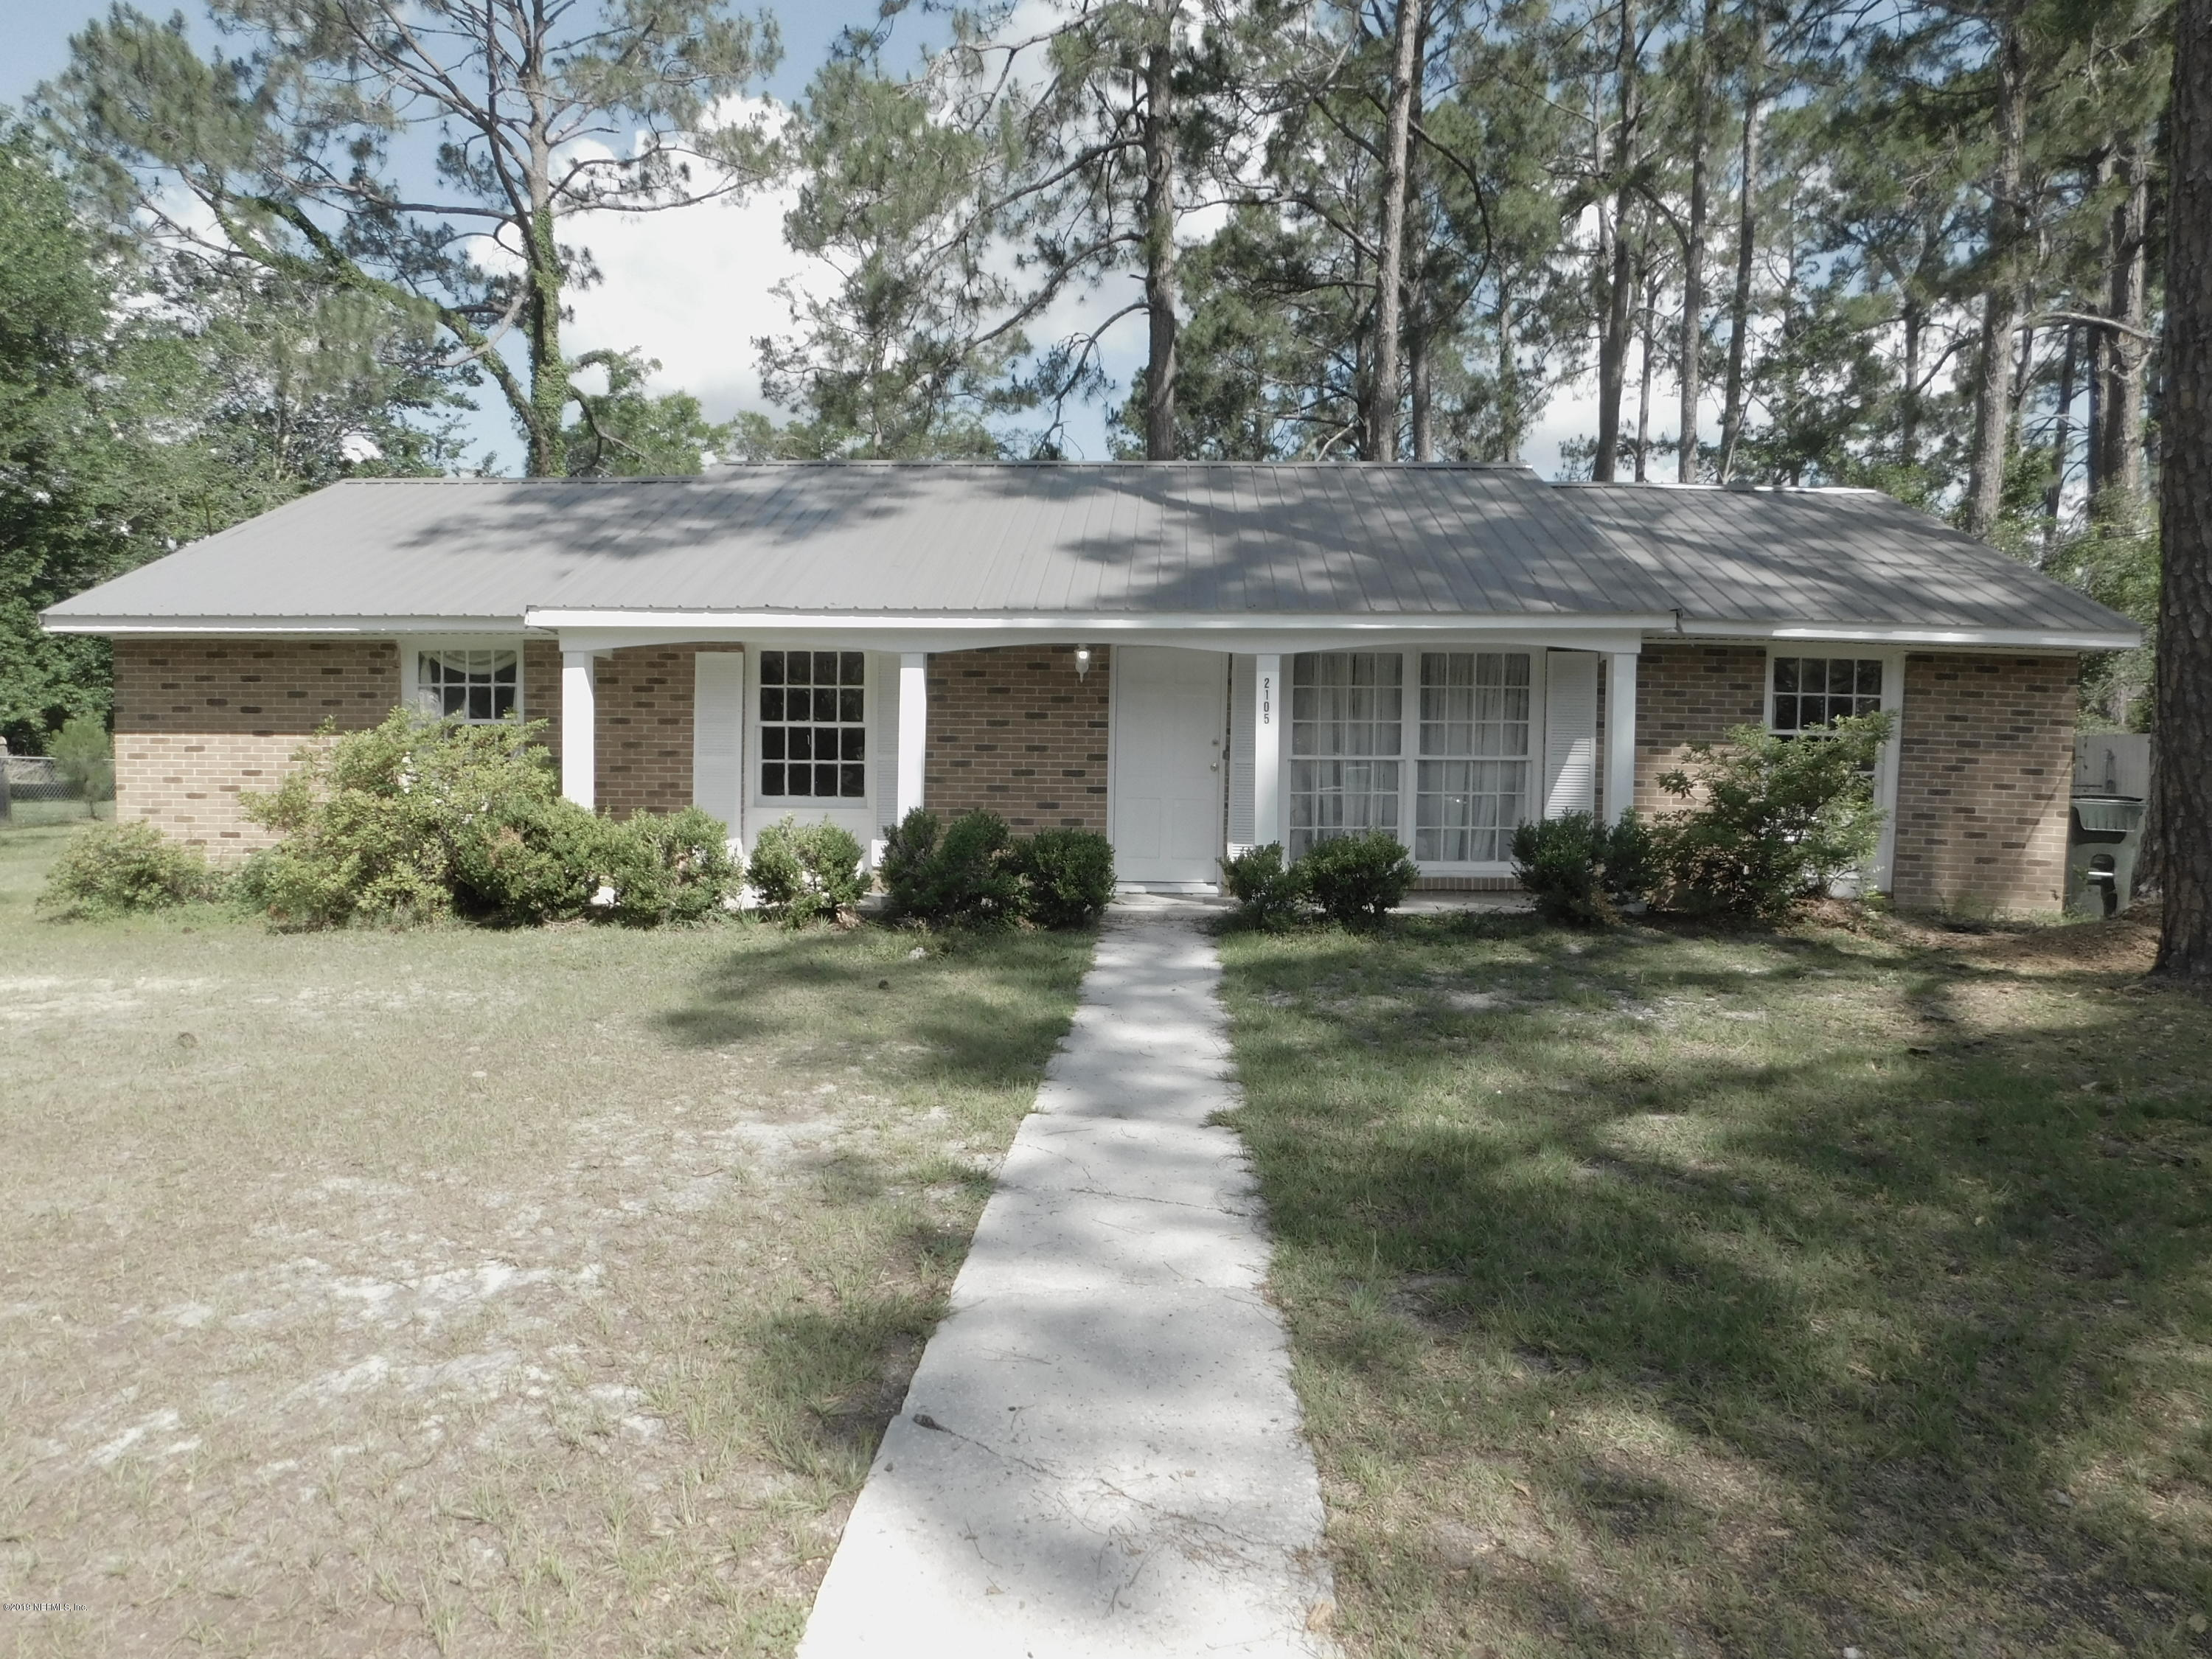 2105 LAKEVIEW, WAYCROSS, GEORGIA 31501, 3 Bedrooms Bedrooms, ,1 BathroomBathrooms,Residential - single family,For sale,LAKEVIEW,995489